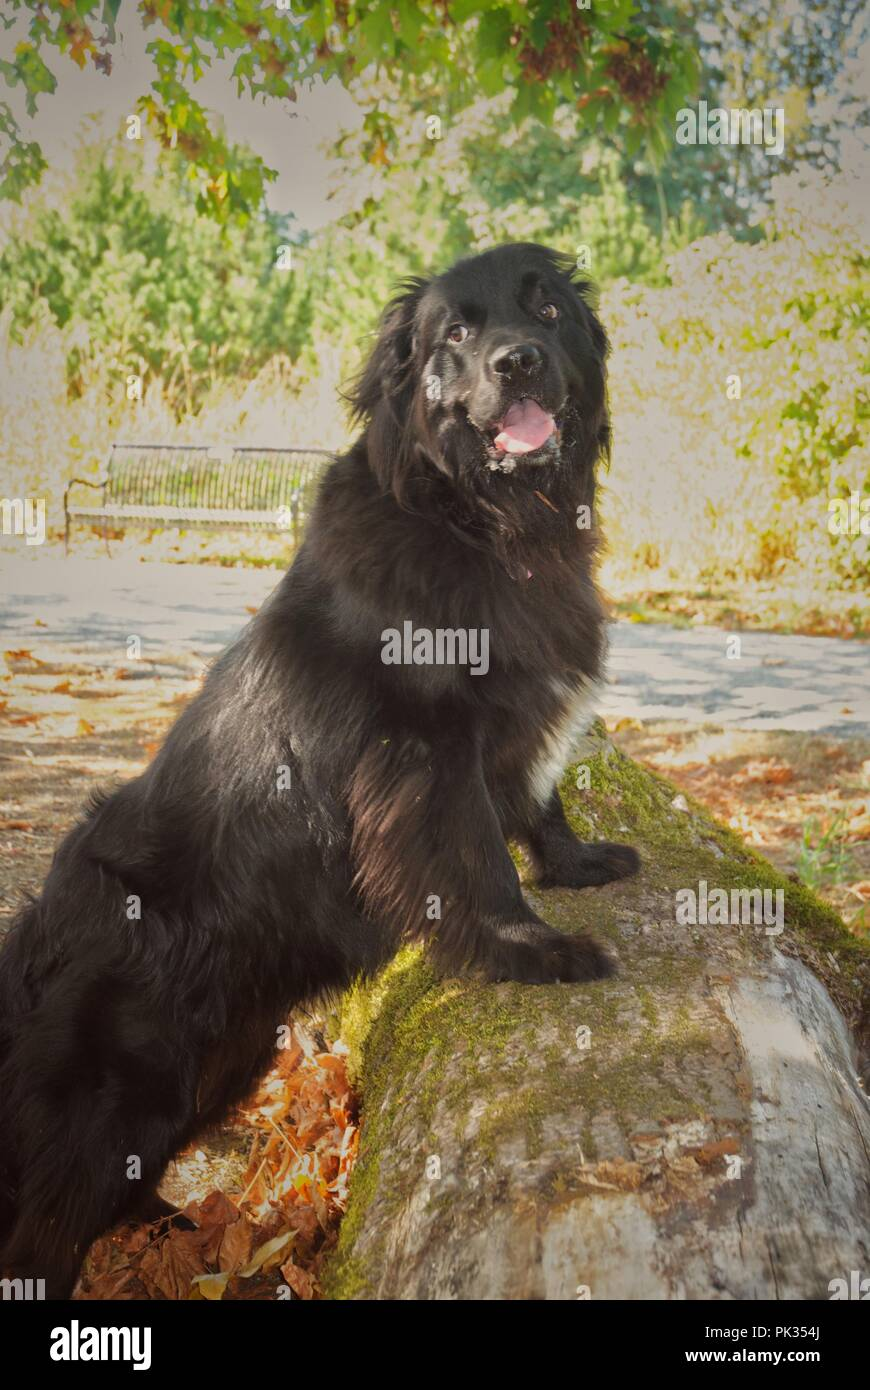 Newfoundland dog standing on a log amidst the trees. - Stock Image